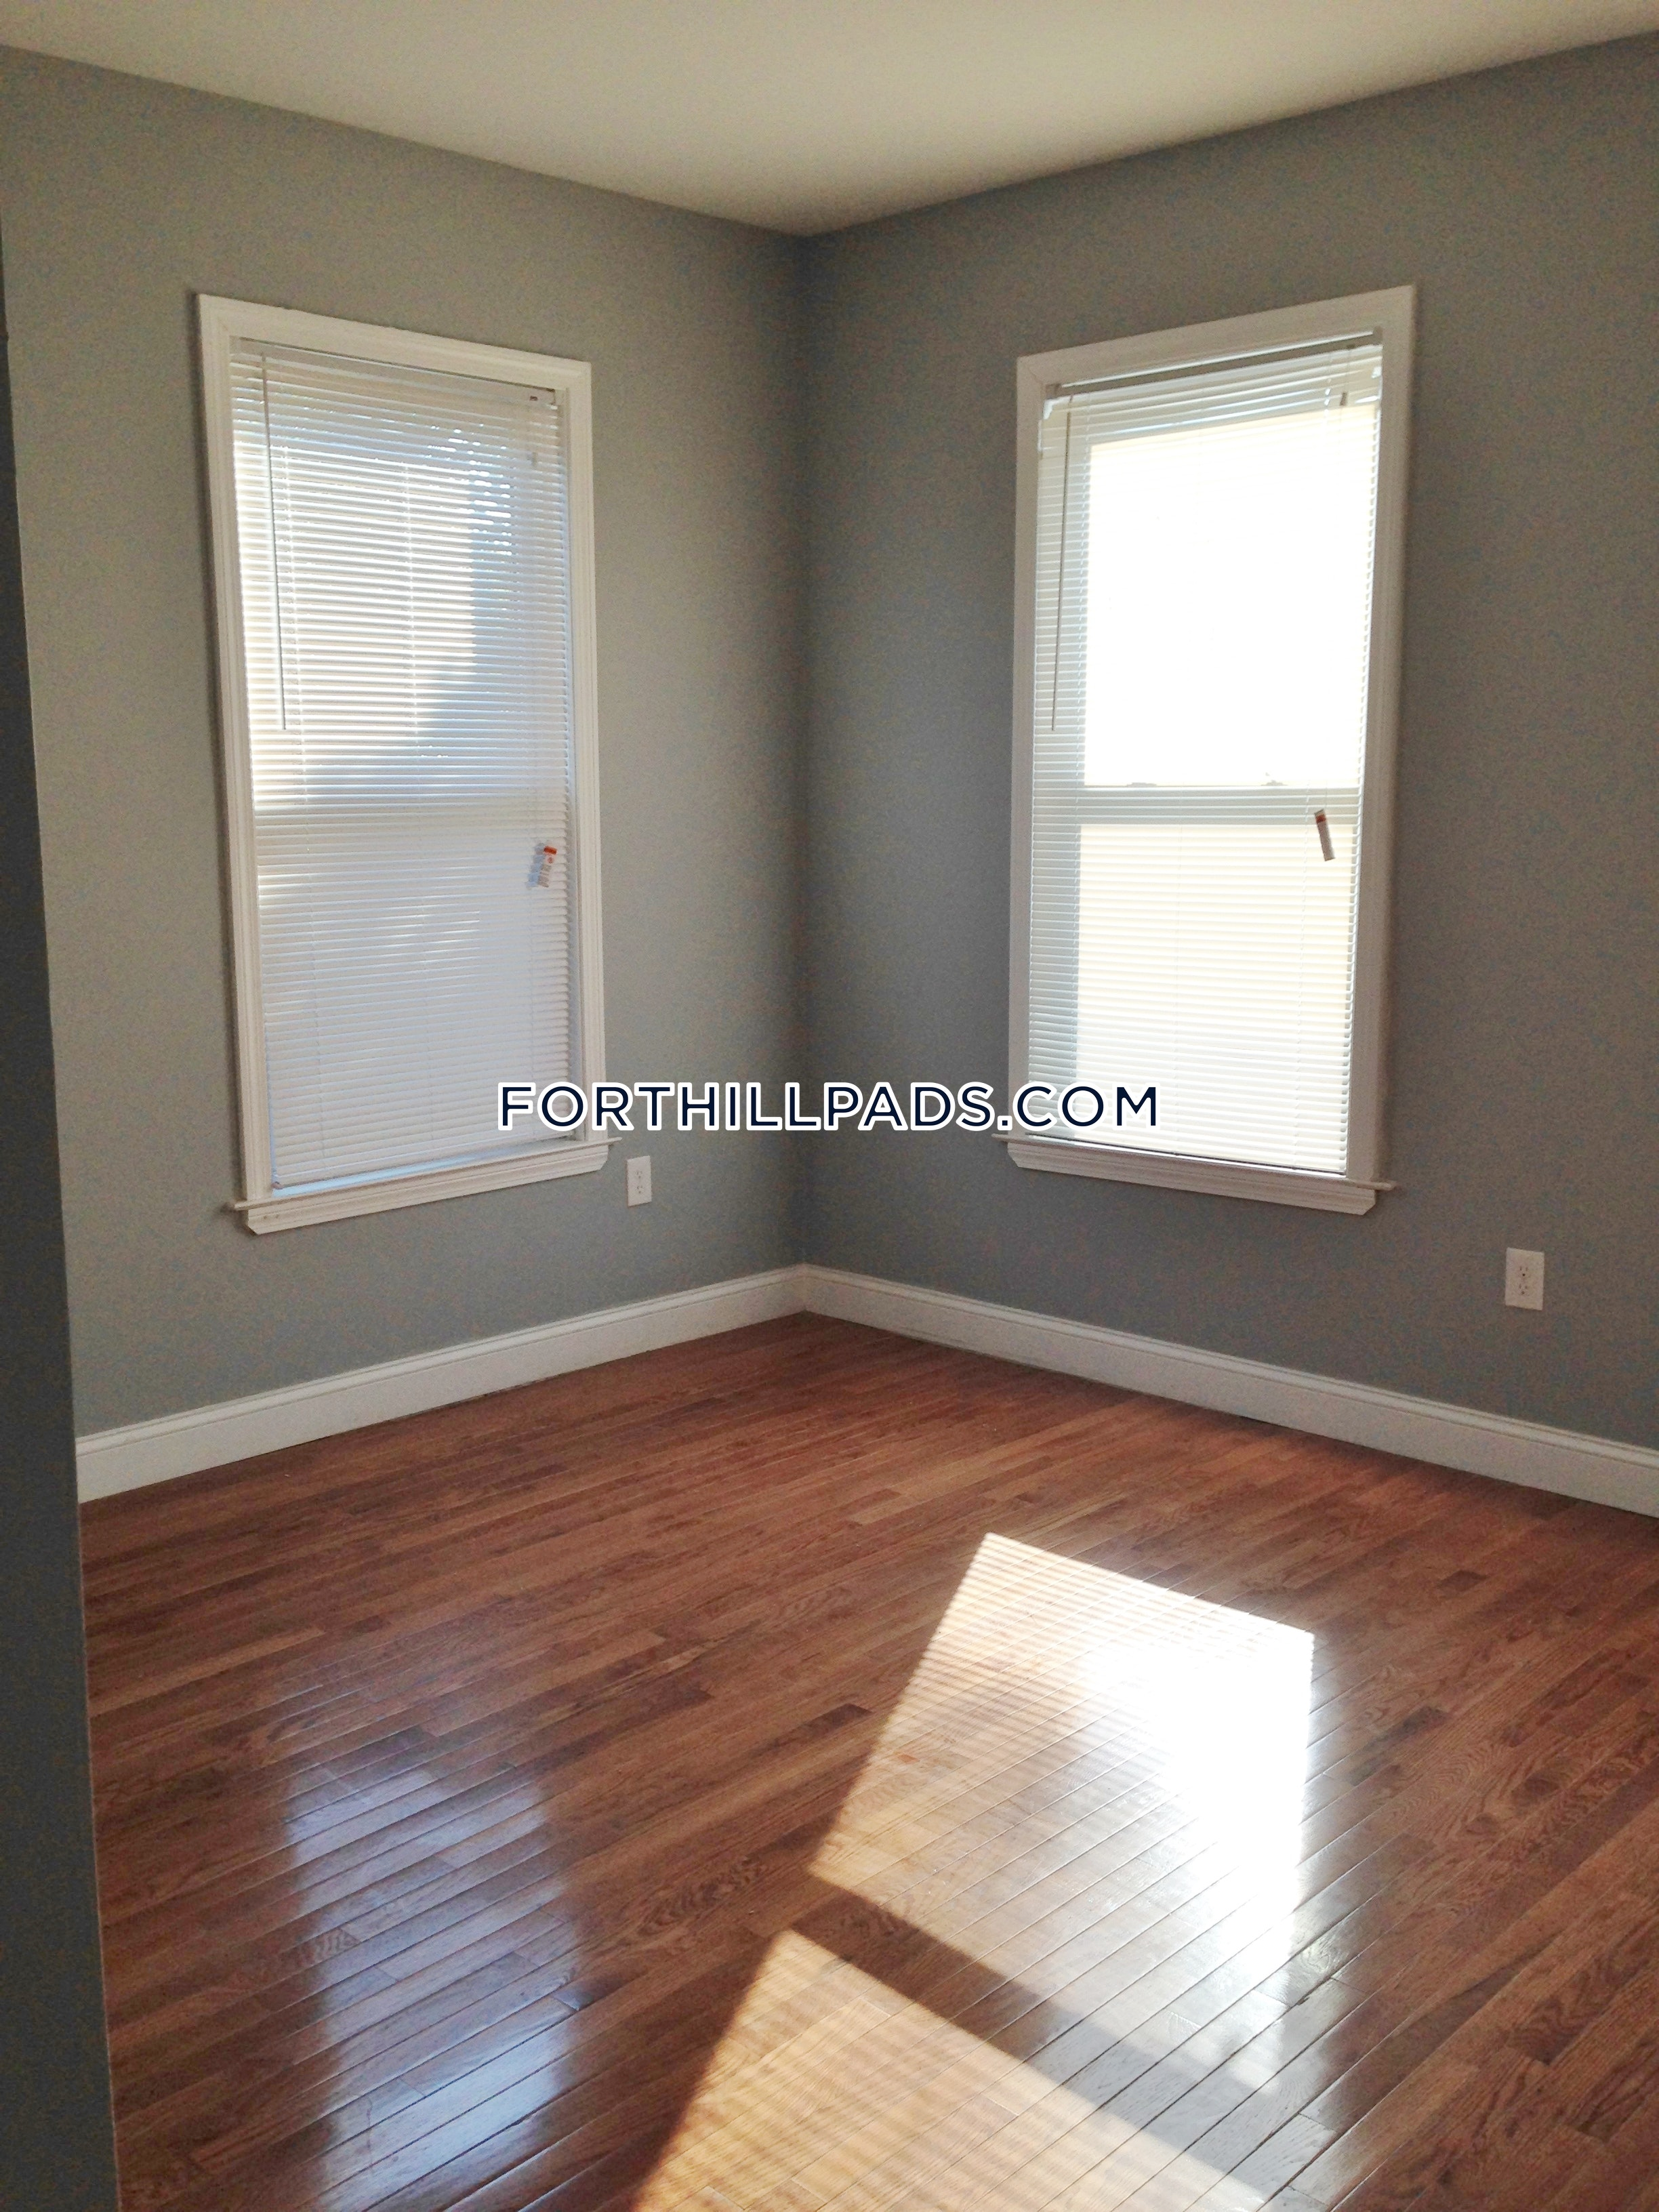 2 Beds 1 Baths - BOSTON - Fort Hill $1,900